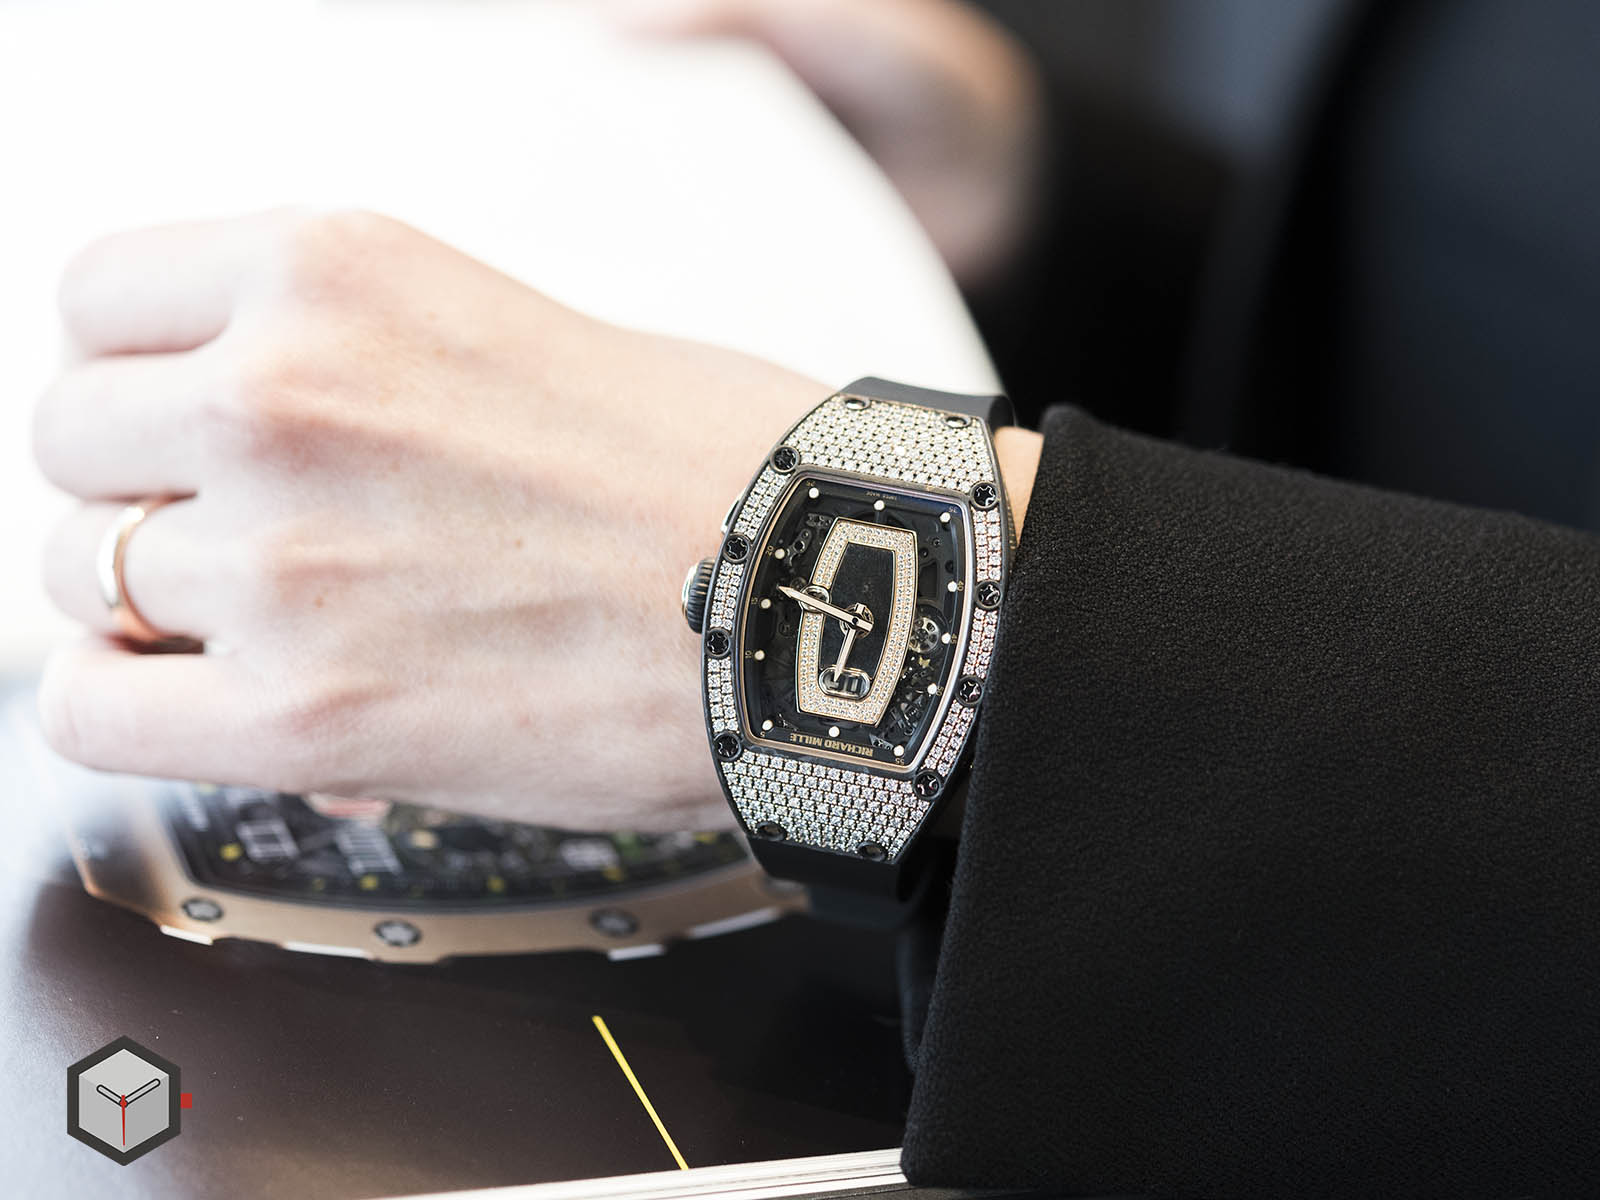 richard-mille-rm-037-automatic-11.jpg